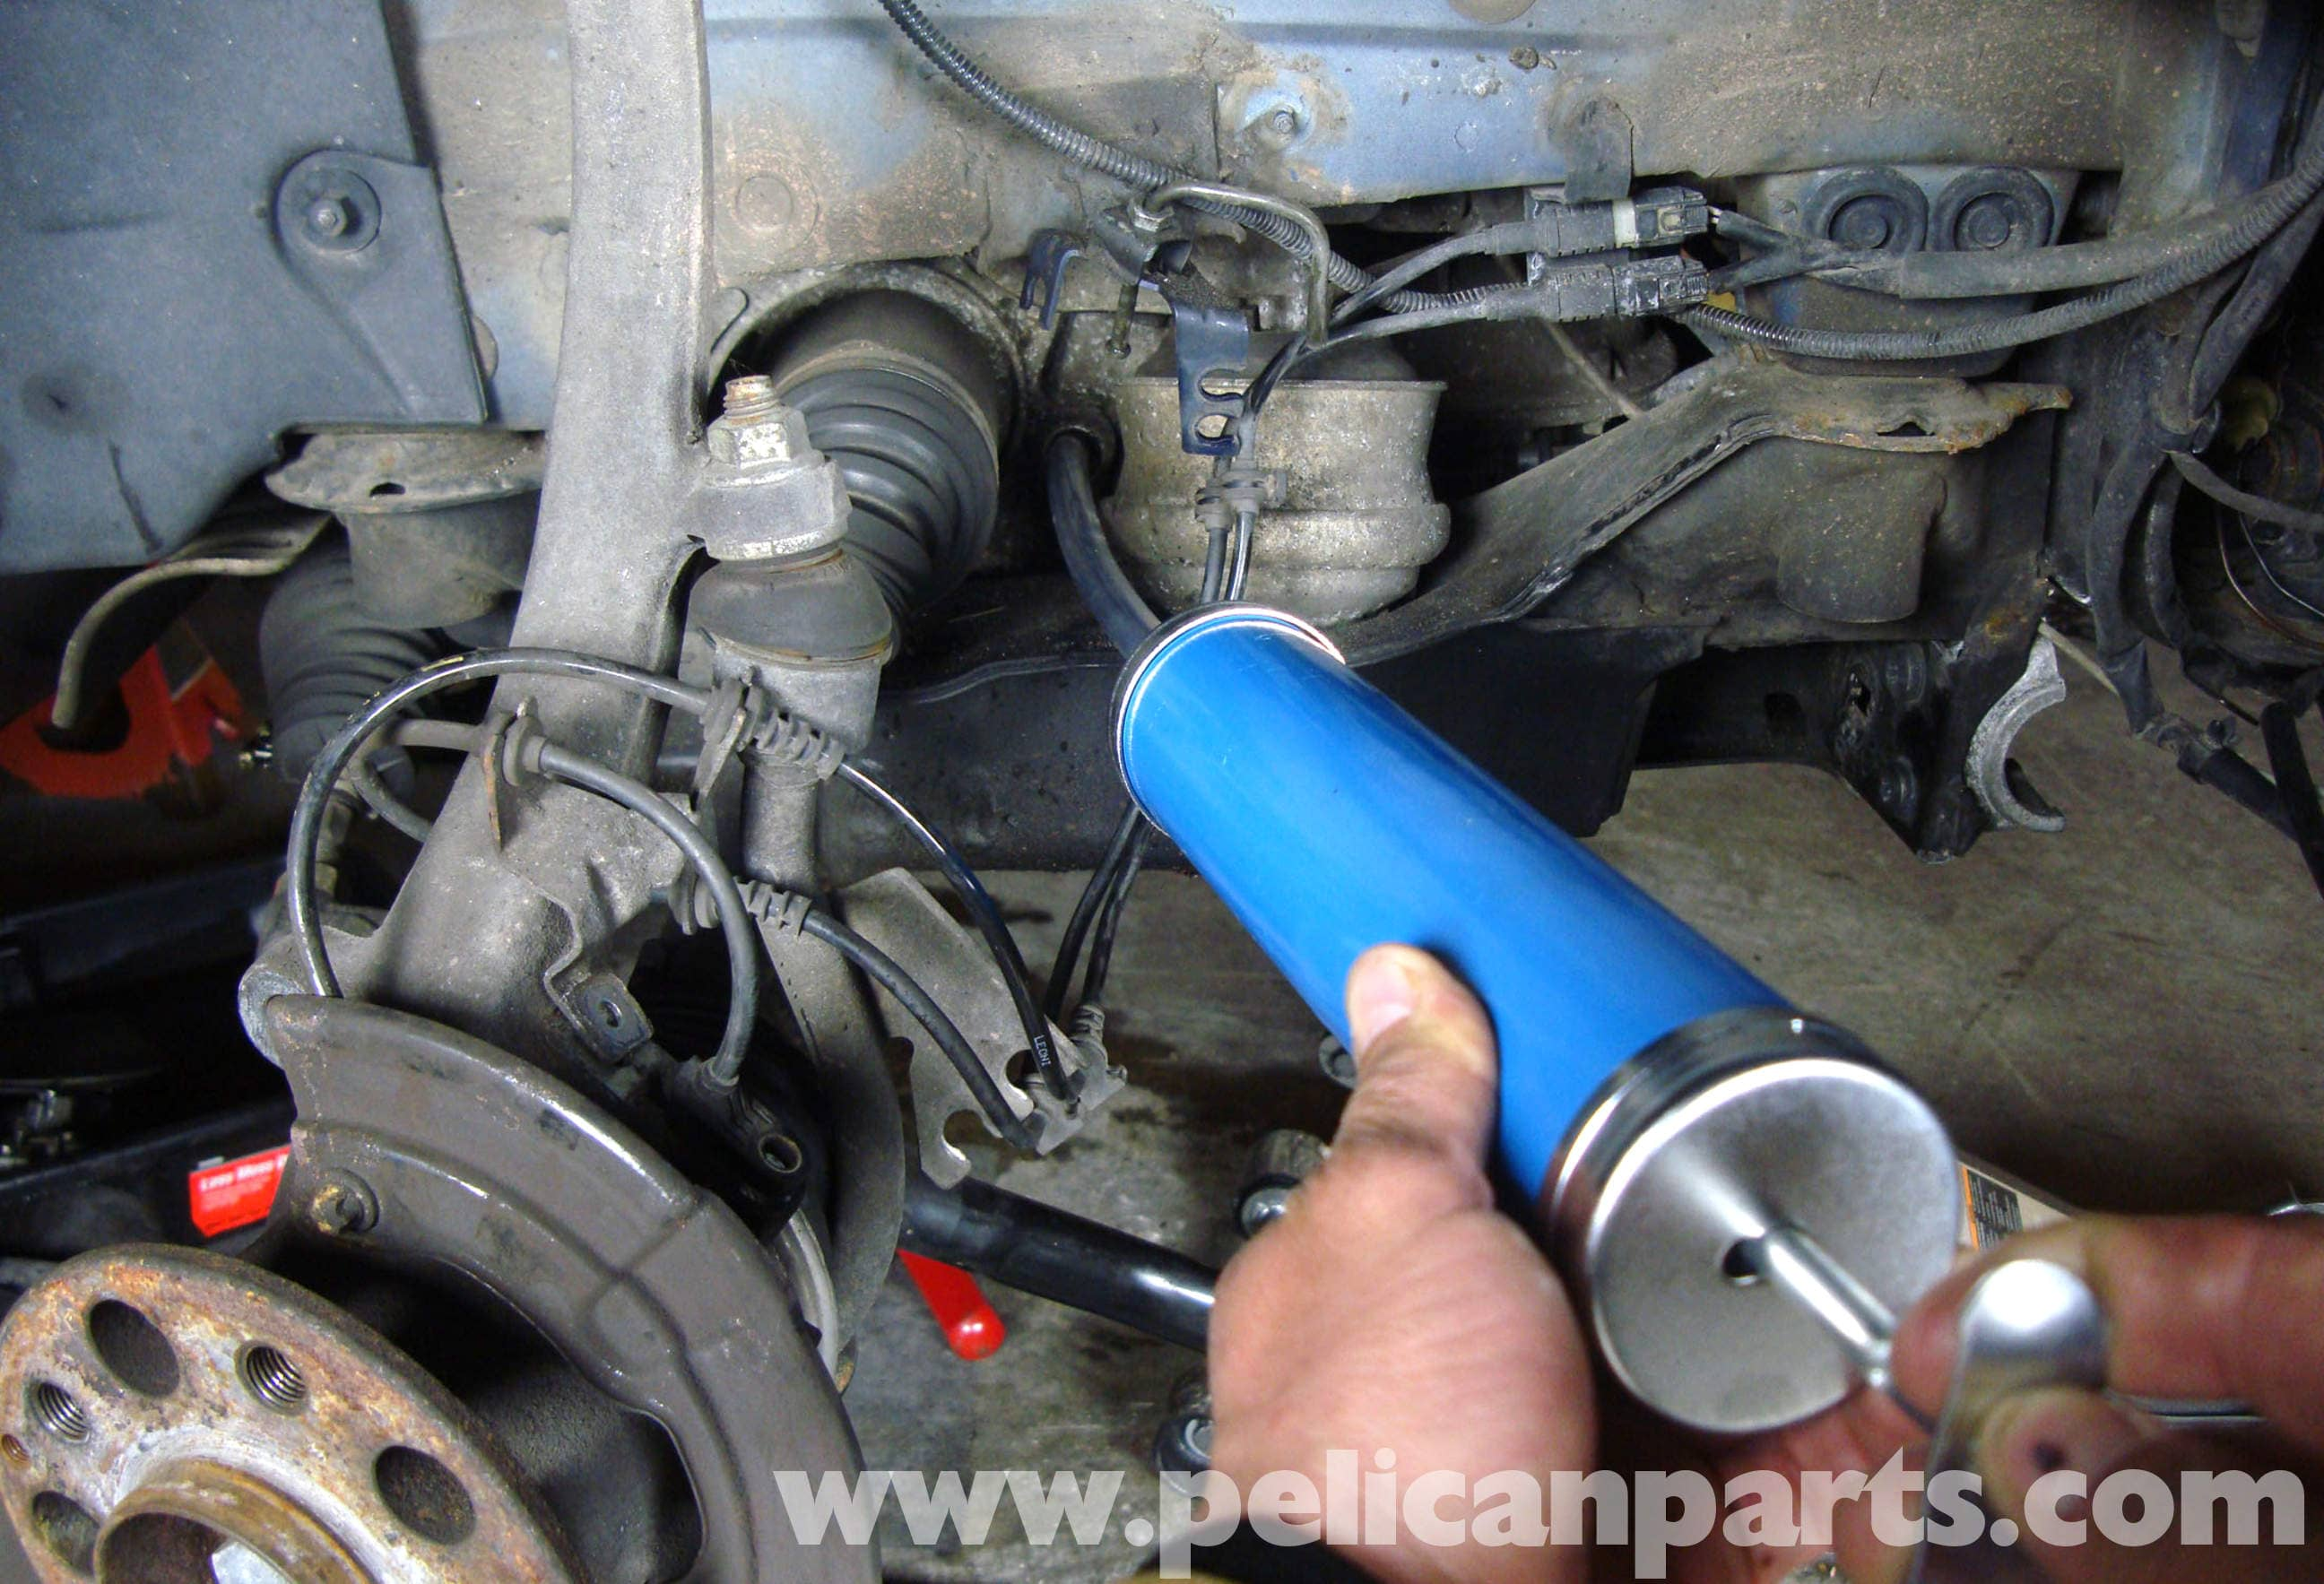 Mercedes benz w211 front differential oil change 2003 for How much is a mercedes benz oil change